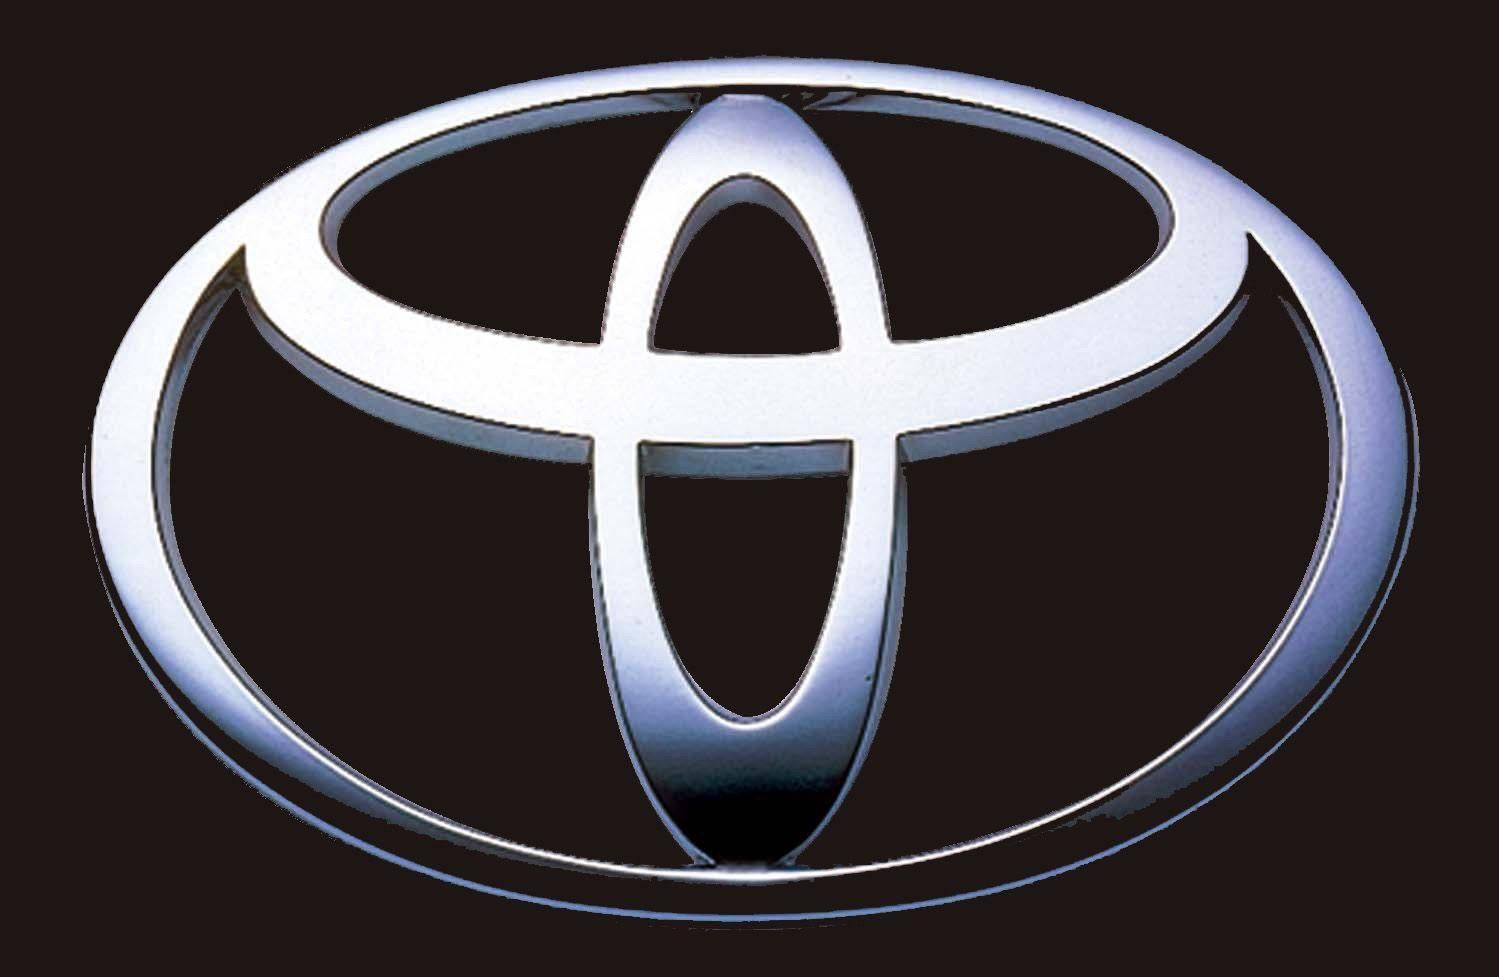 Toyota Logo Full Hd Wallpapers Free Download 13 Toyota Logo